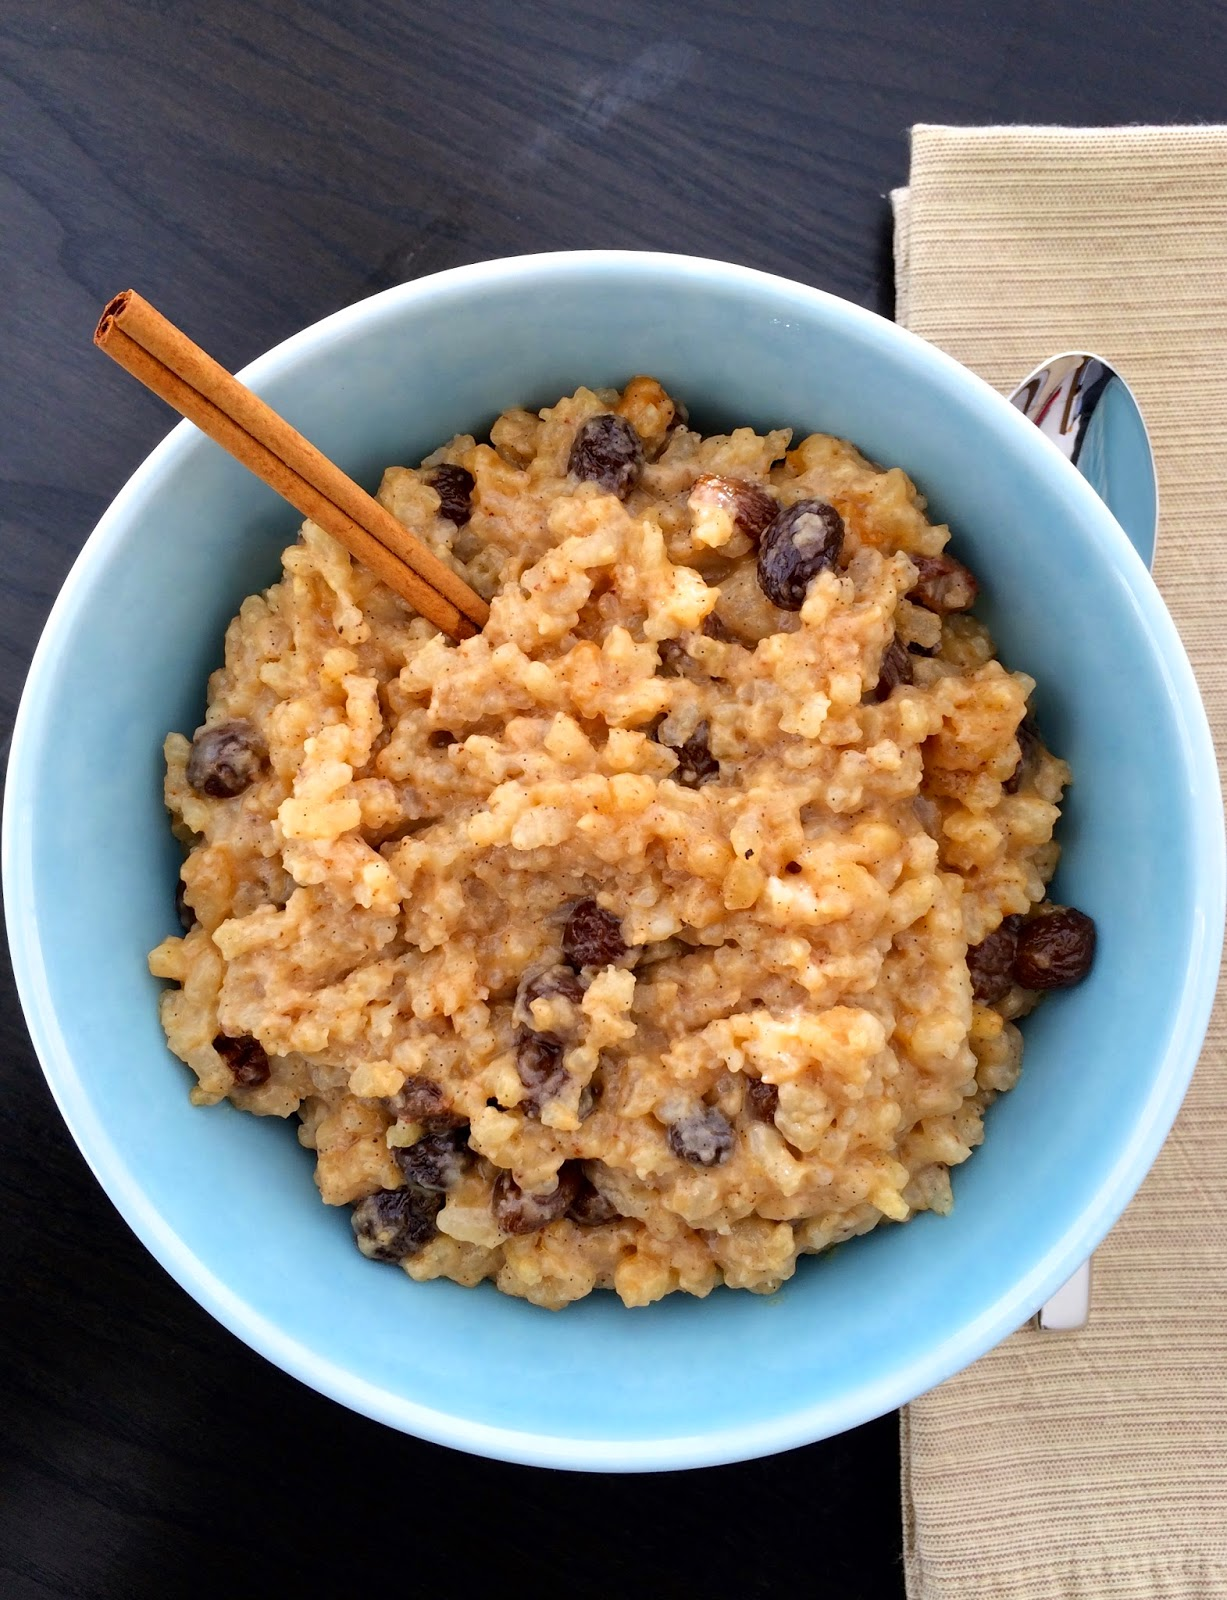 Toasted Vanilla Rice Pudding by @JavelinWarrior